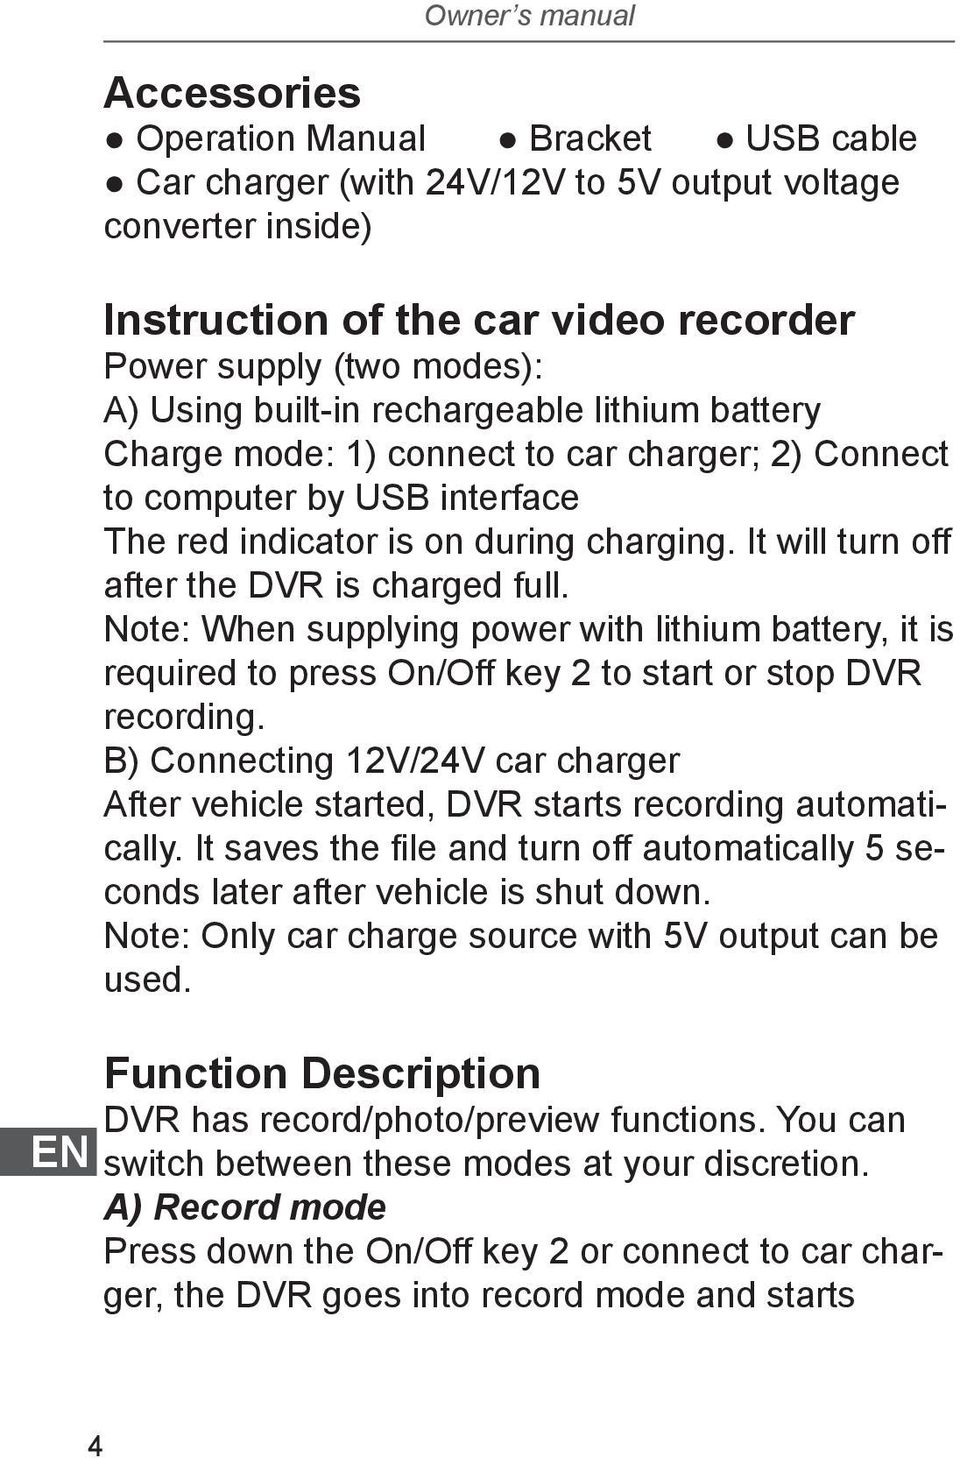 It will turn off after the DVR is charged full. Note: When supplying power with lithium battery, it is required to press On/Off key 2 to start or stop DVR recording.